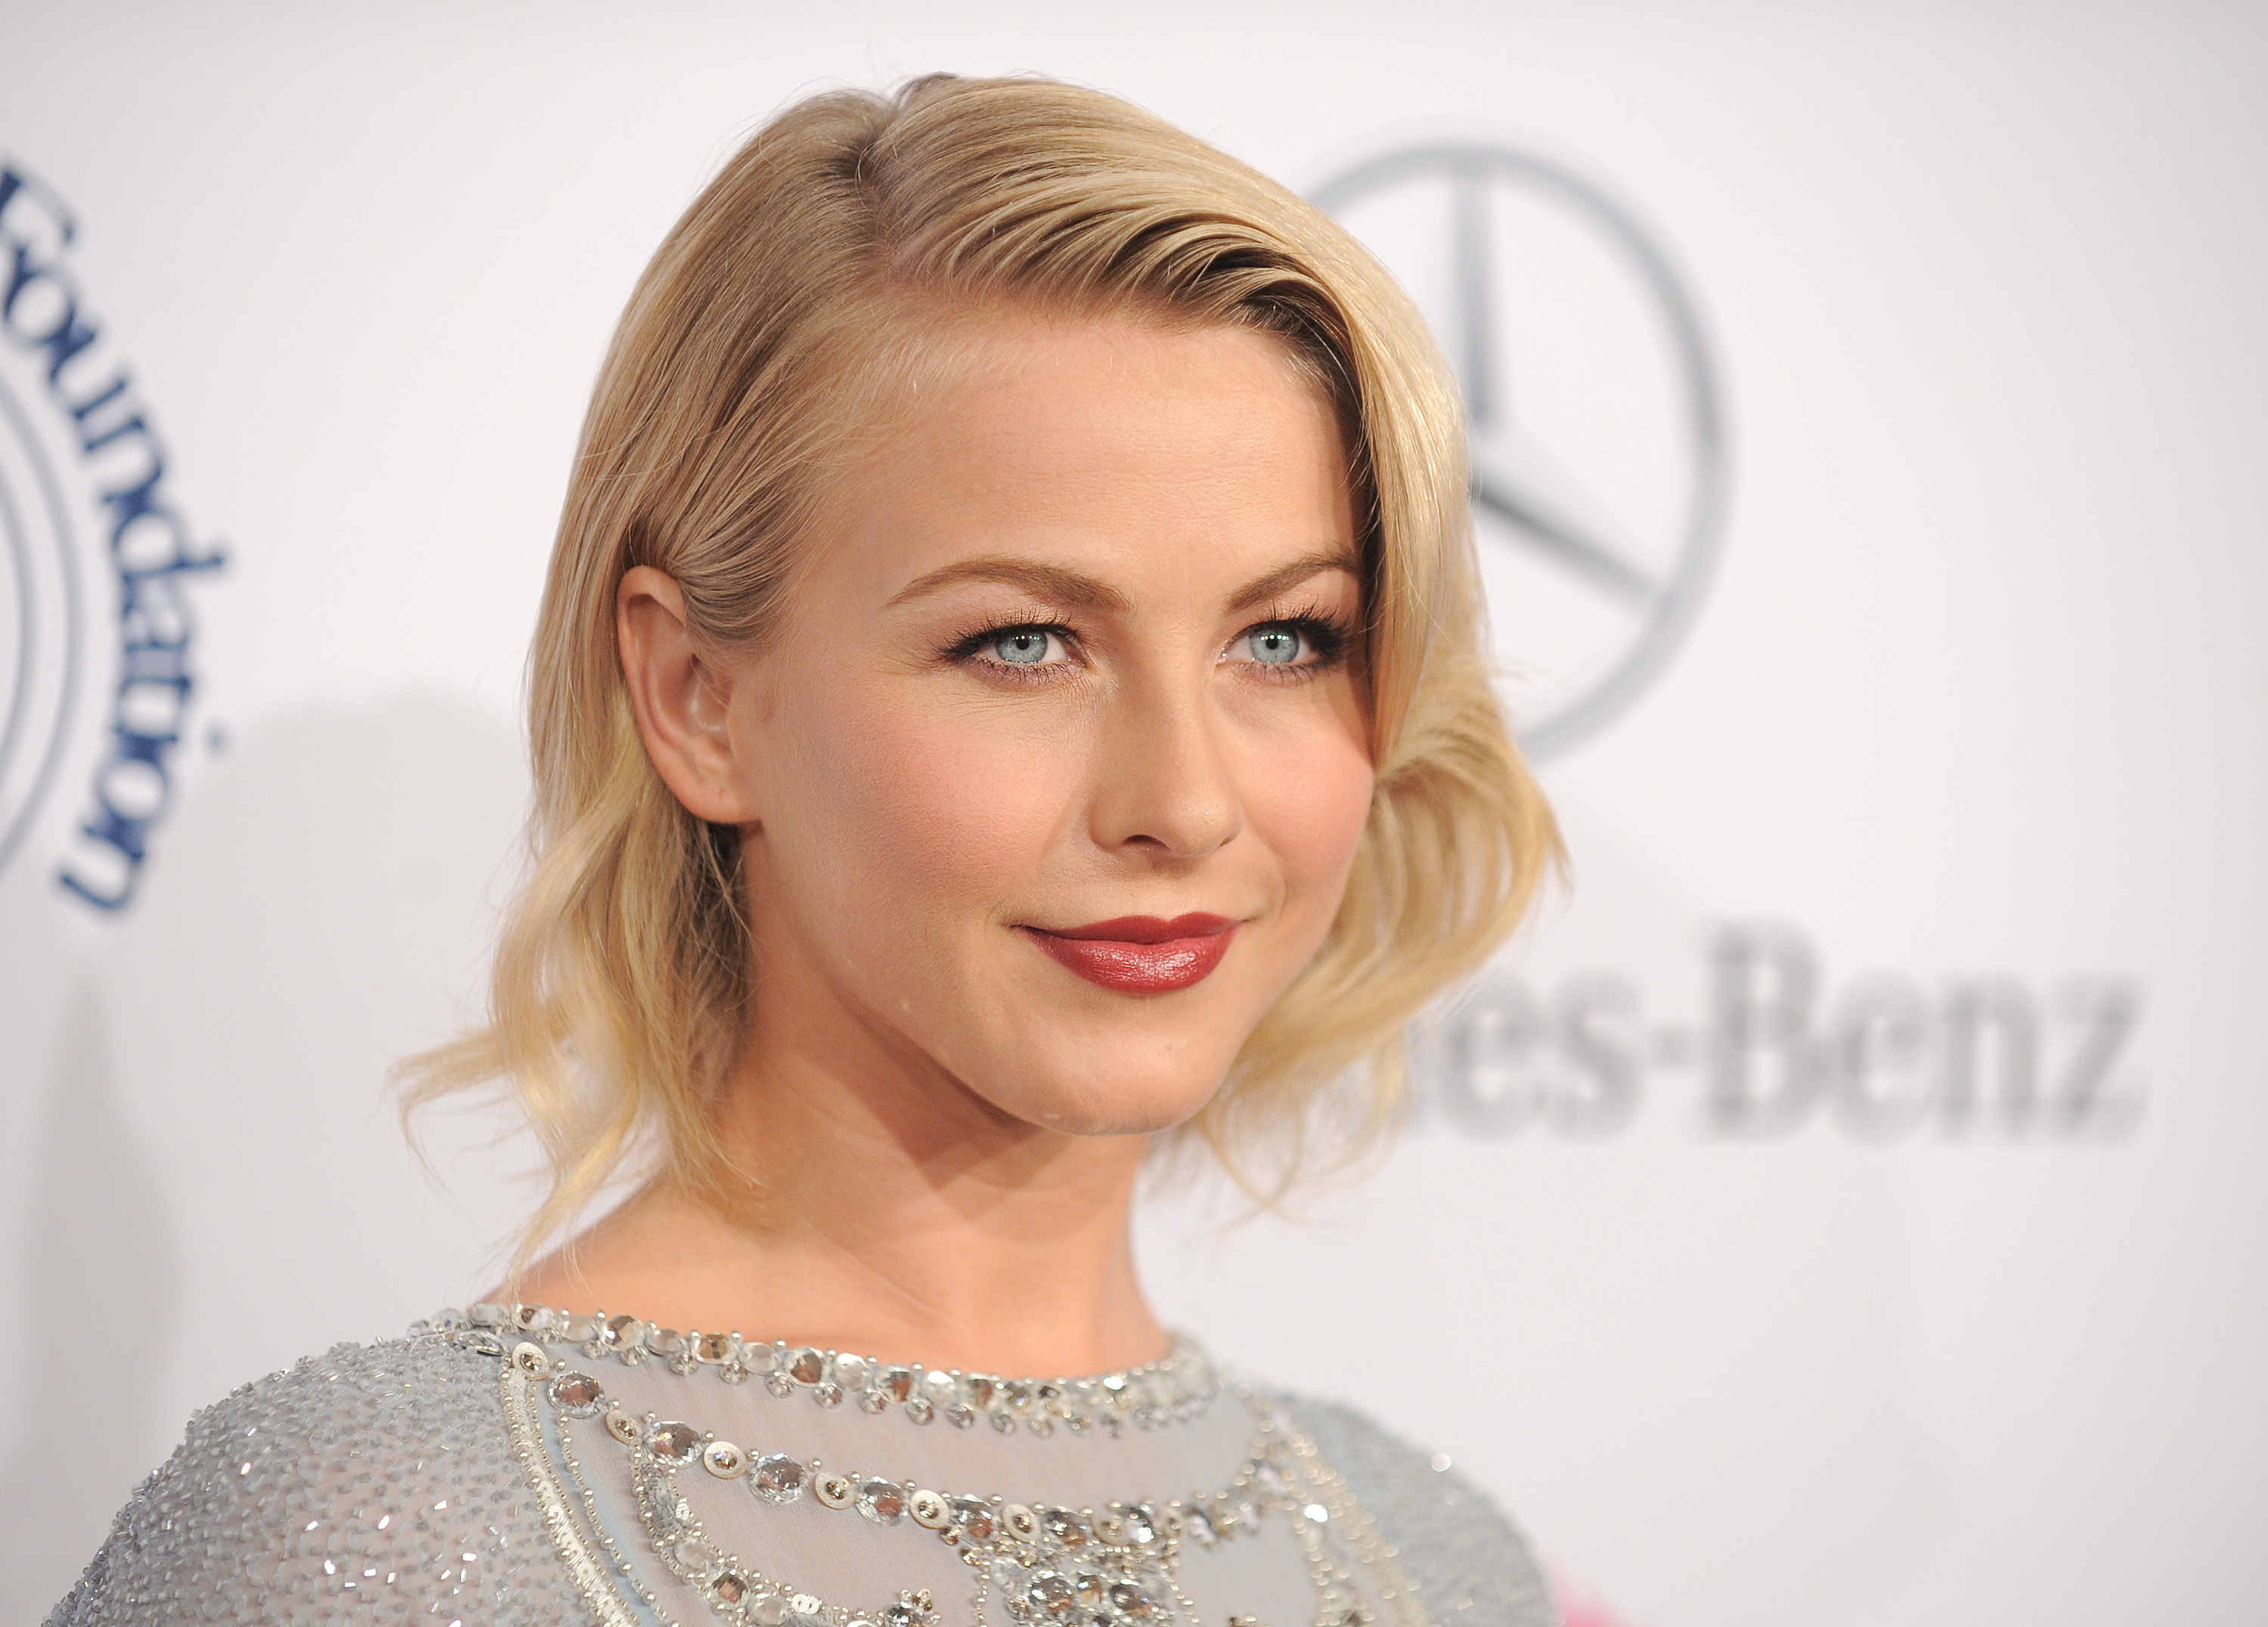 Julianne Hough Wallpapers And Backgrounds